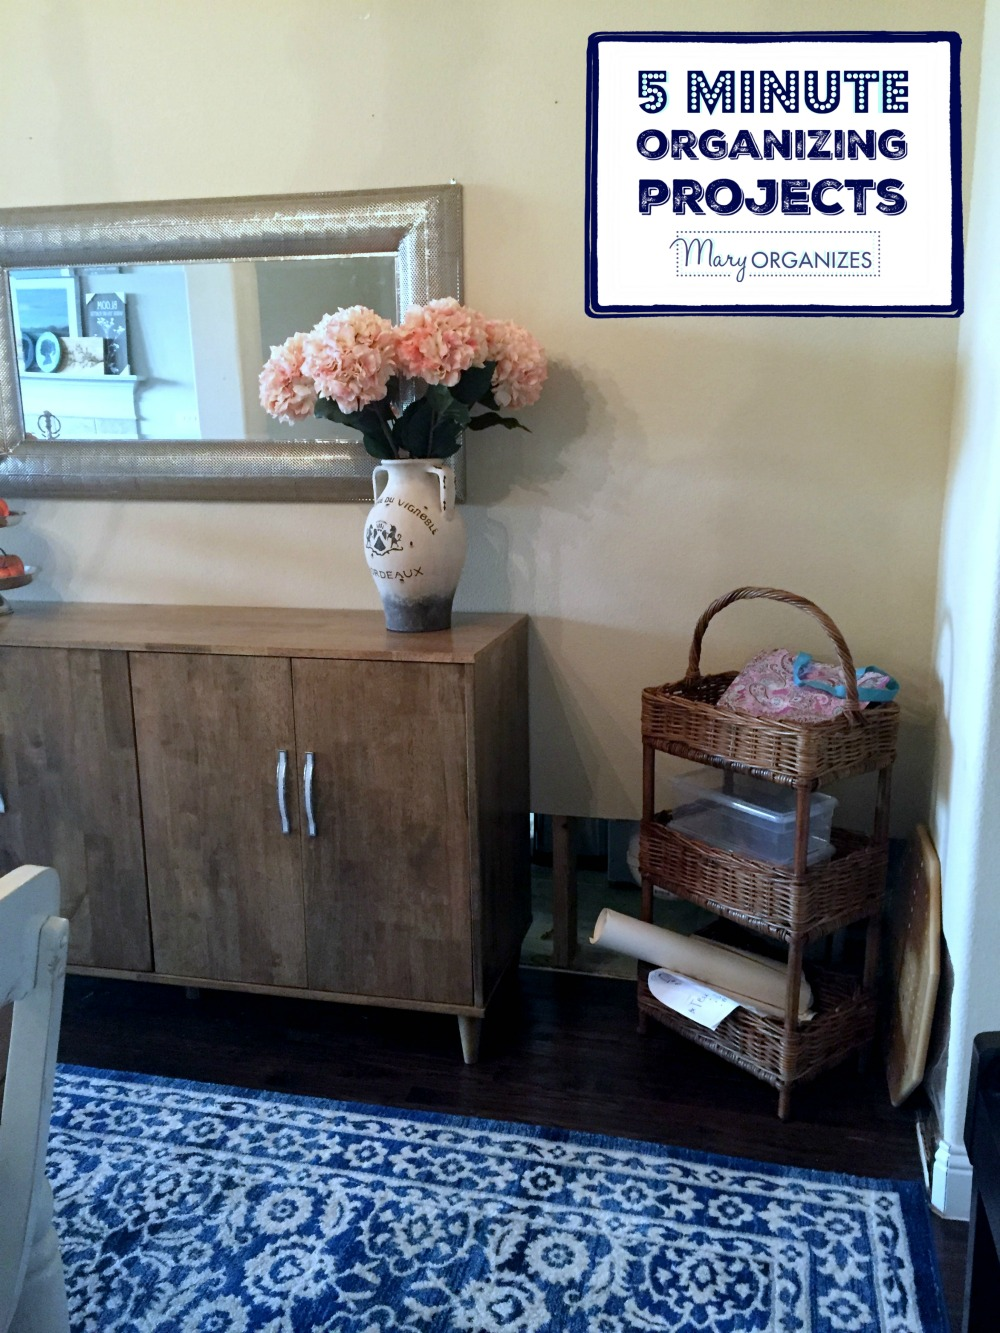 5-minute-organizing-projects-small-games-1